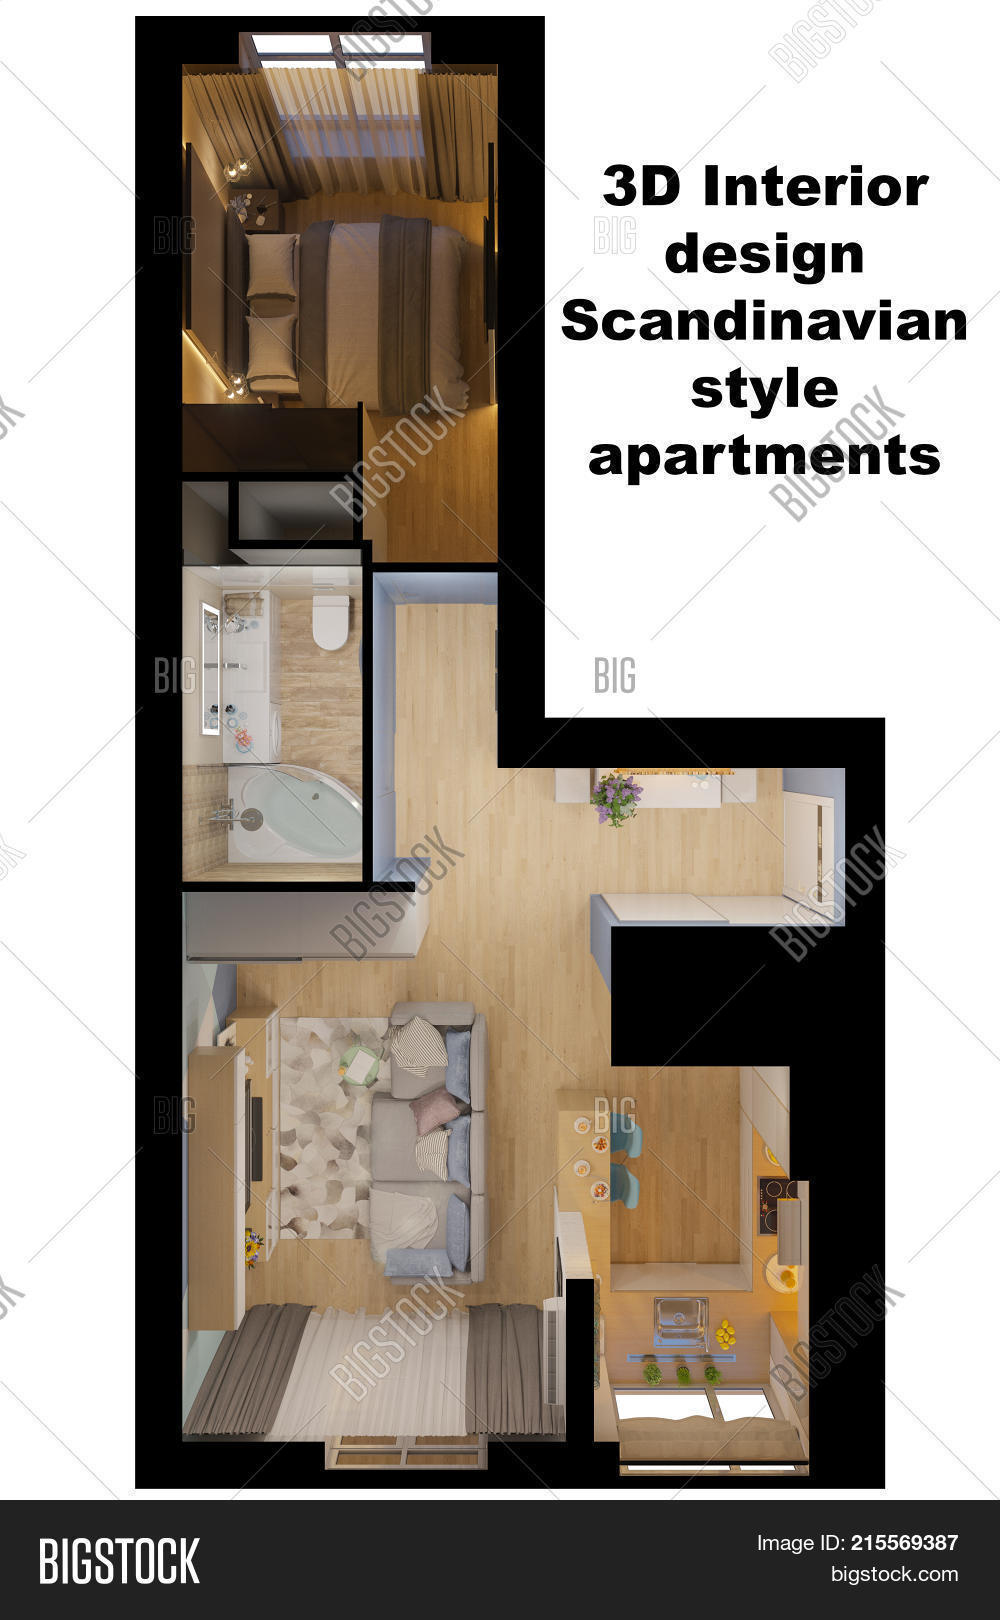 3d Illustration Of The Interior Design Of An Apartment In Scandinavian  Style. Top View Interior